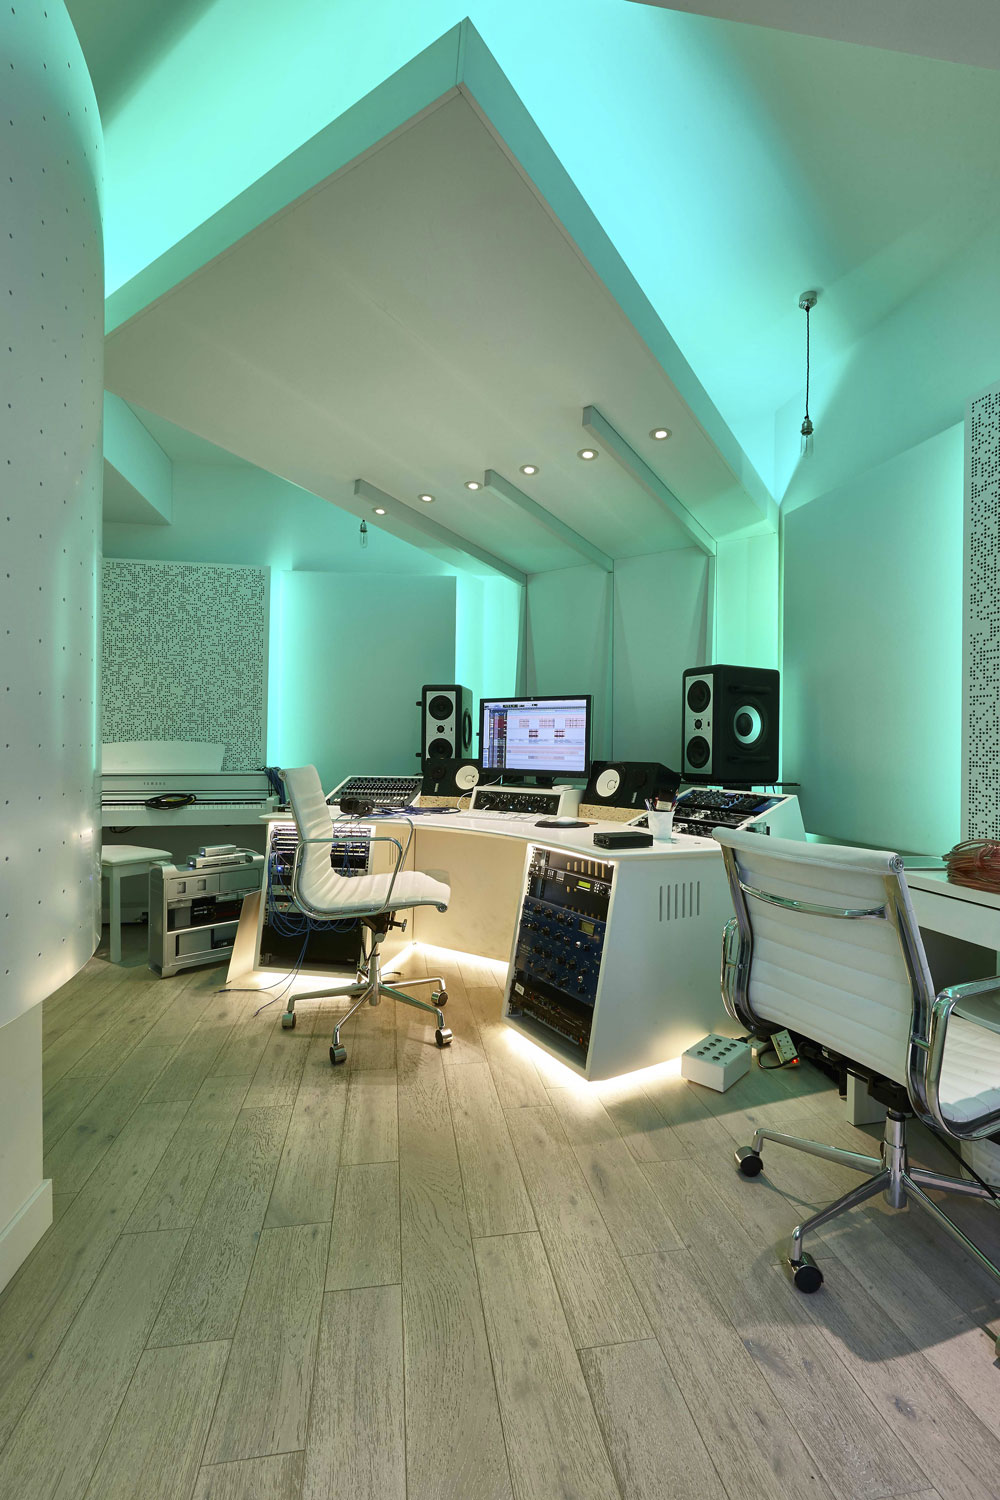 Studio 3, The Church Recording Studio, formerly owned by Dave Stewart of the Eurythmics | Interiors Photography